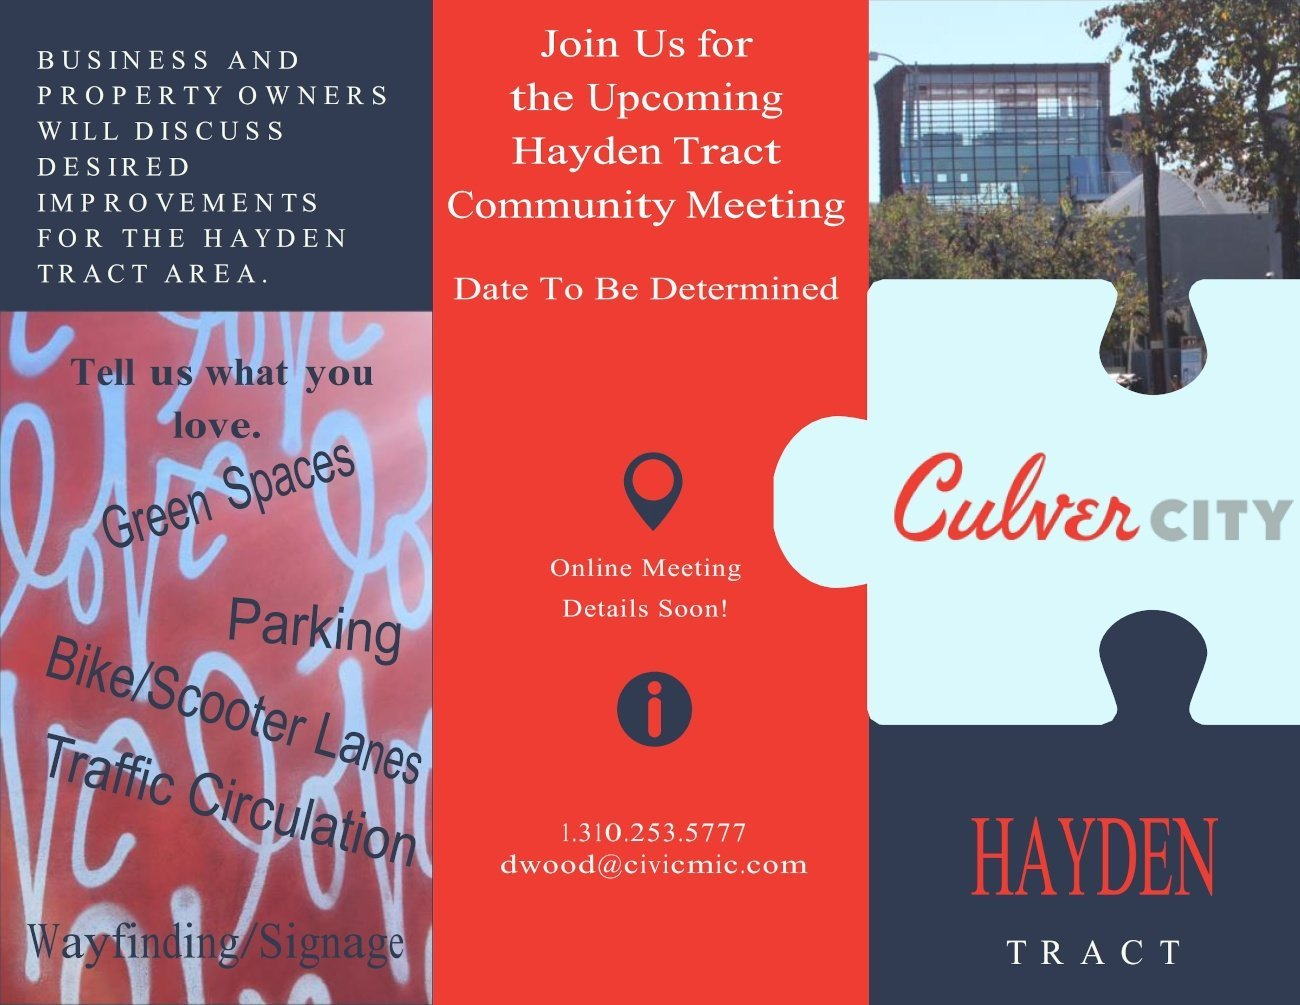 Hayden Tract Meeting TBD